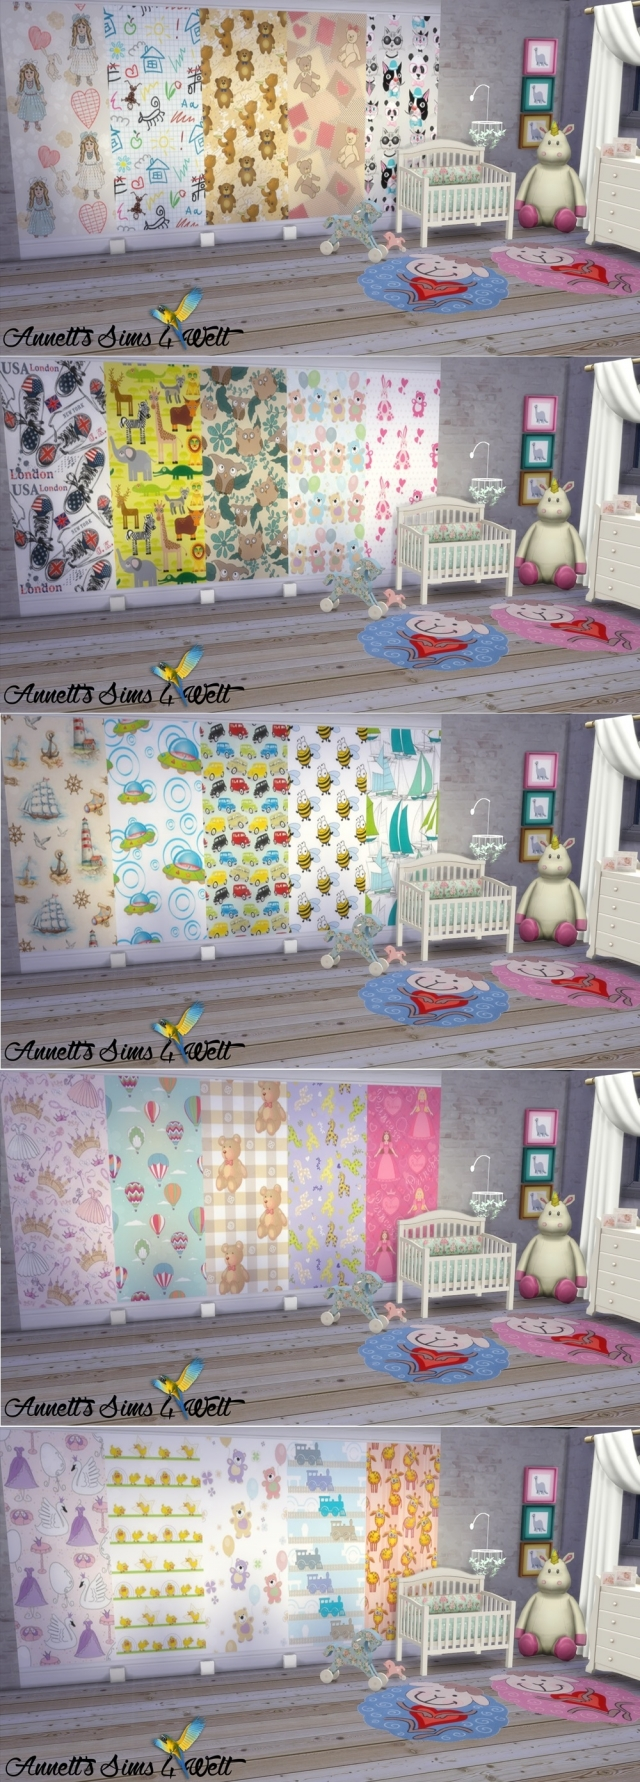 Kids Wallpapers Part 1 by annett85